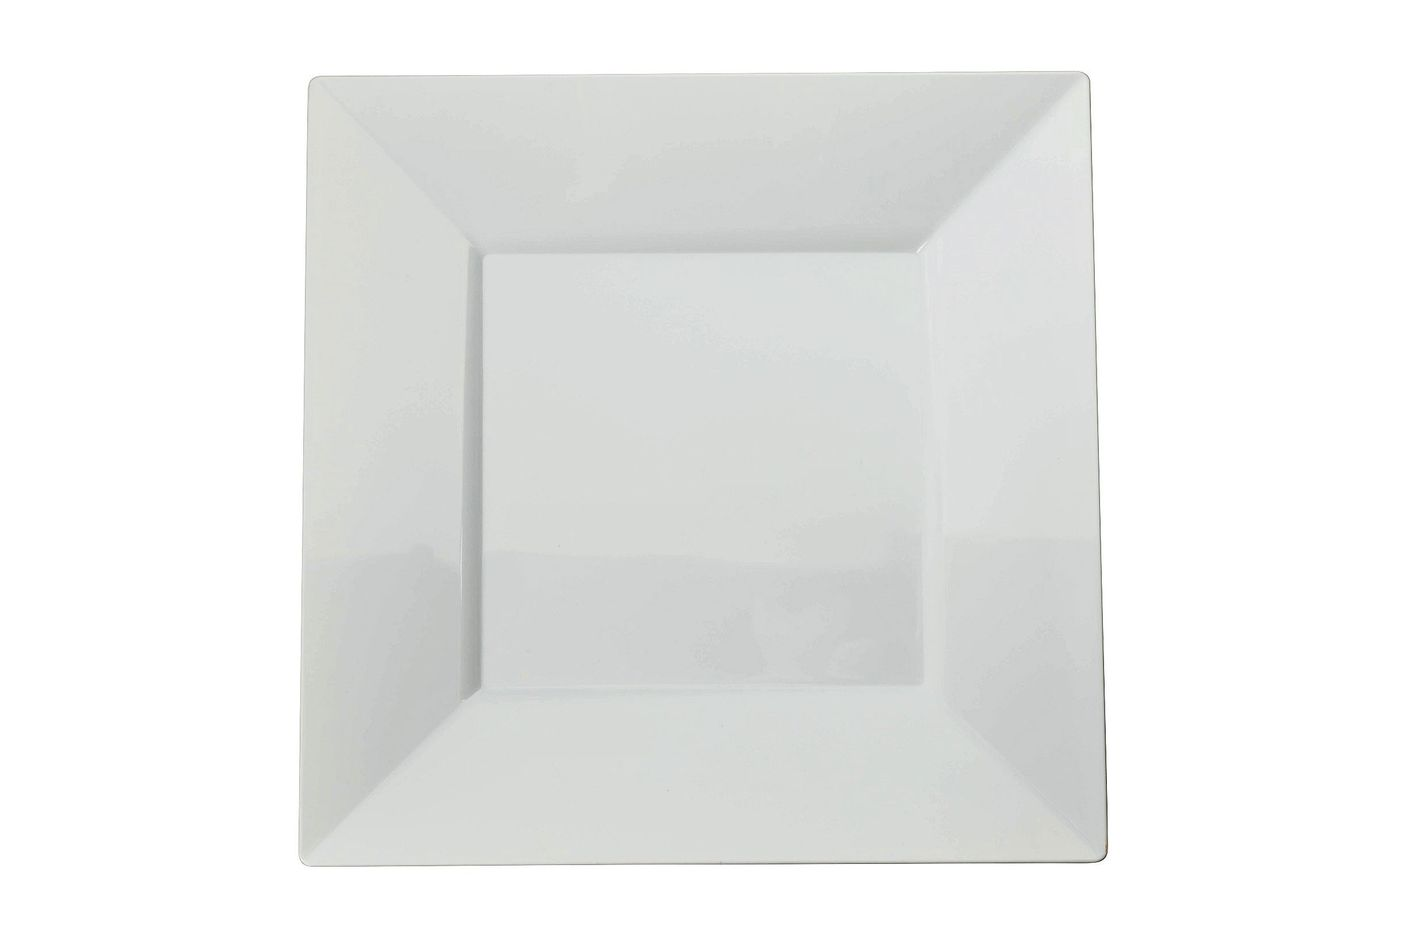 Exquisite 60-Pack Premium Disposable Plastic Plates, Heavyweight Square Plastic Plates